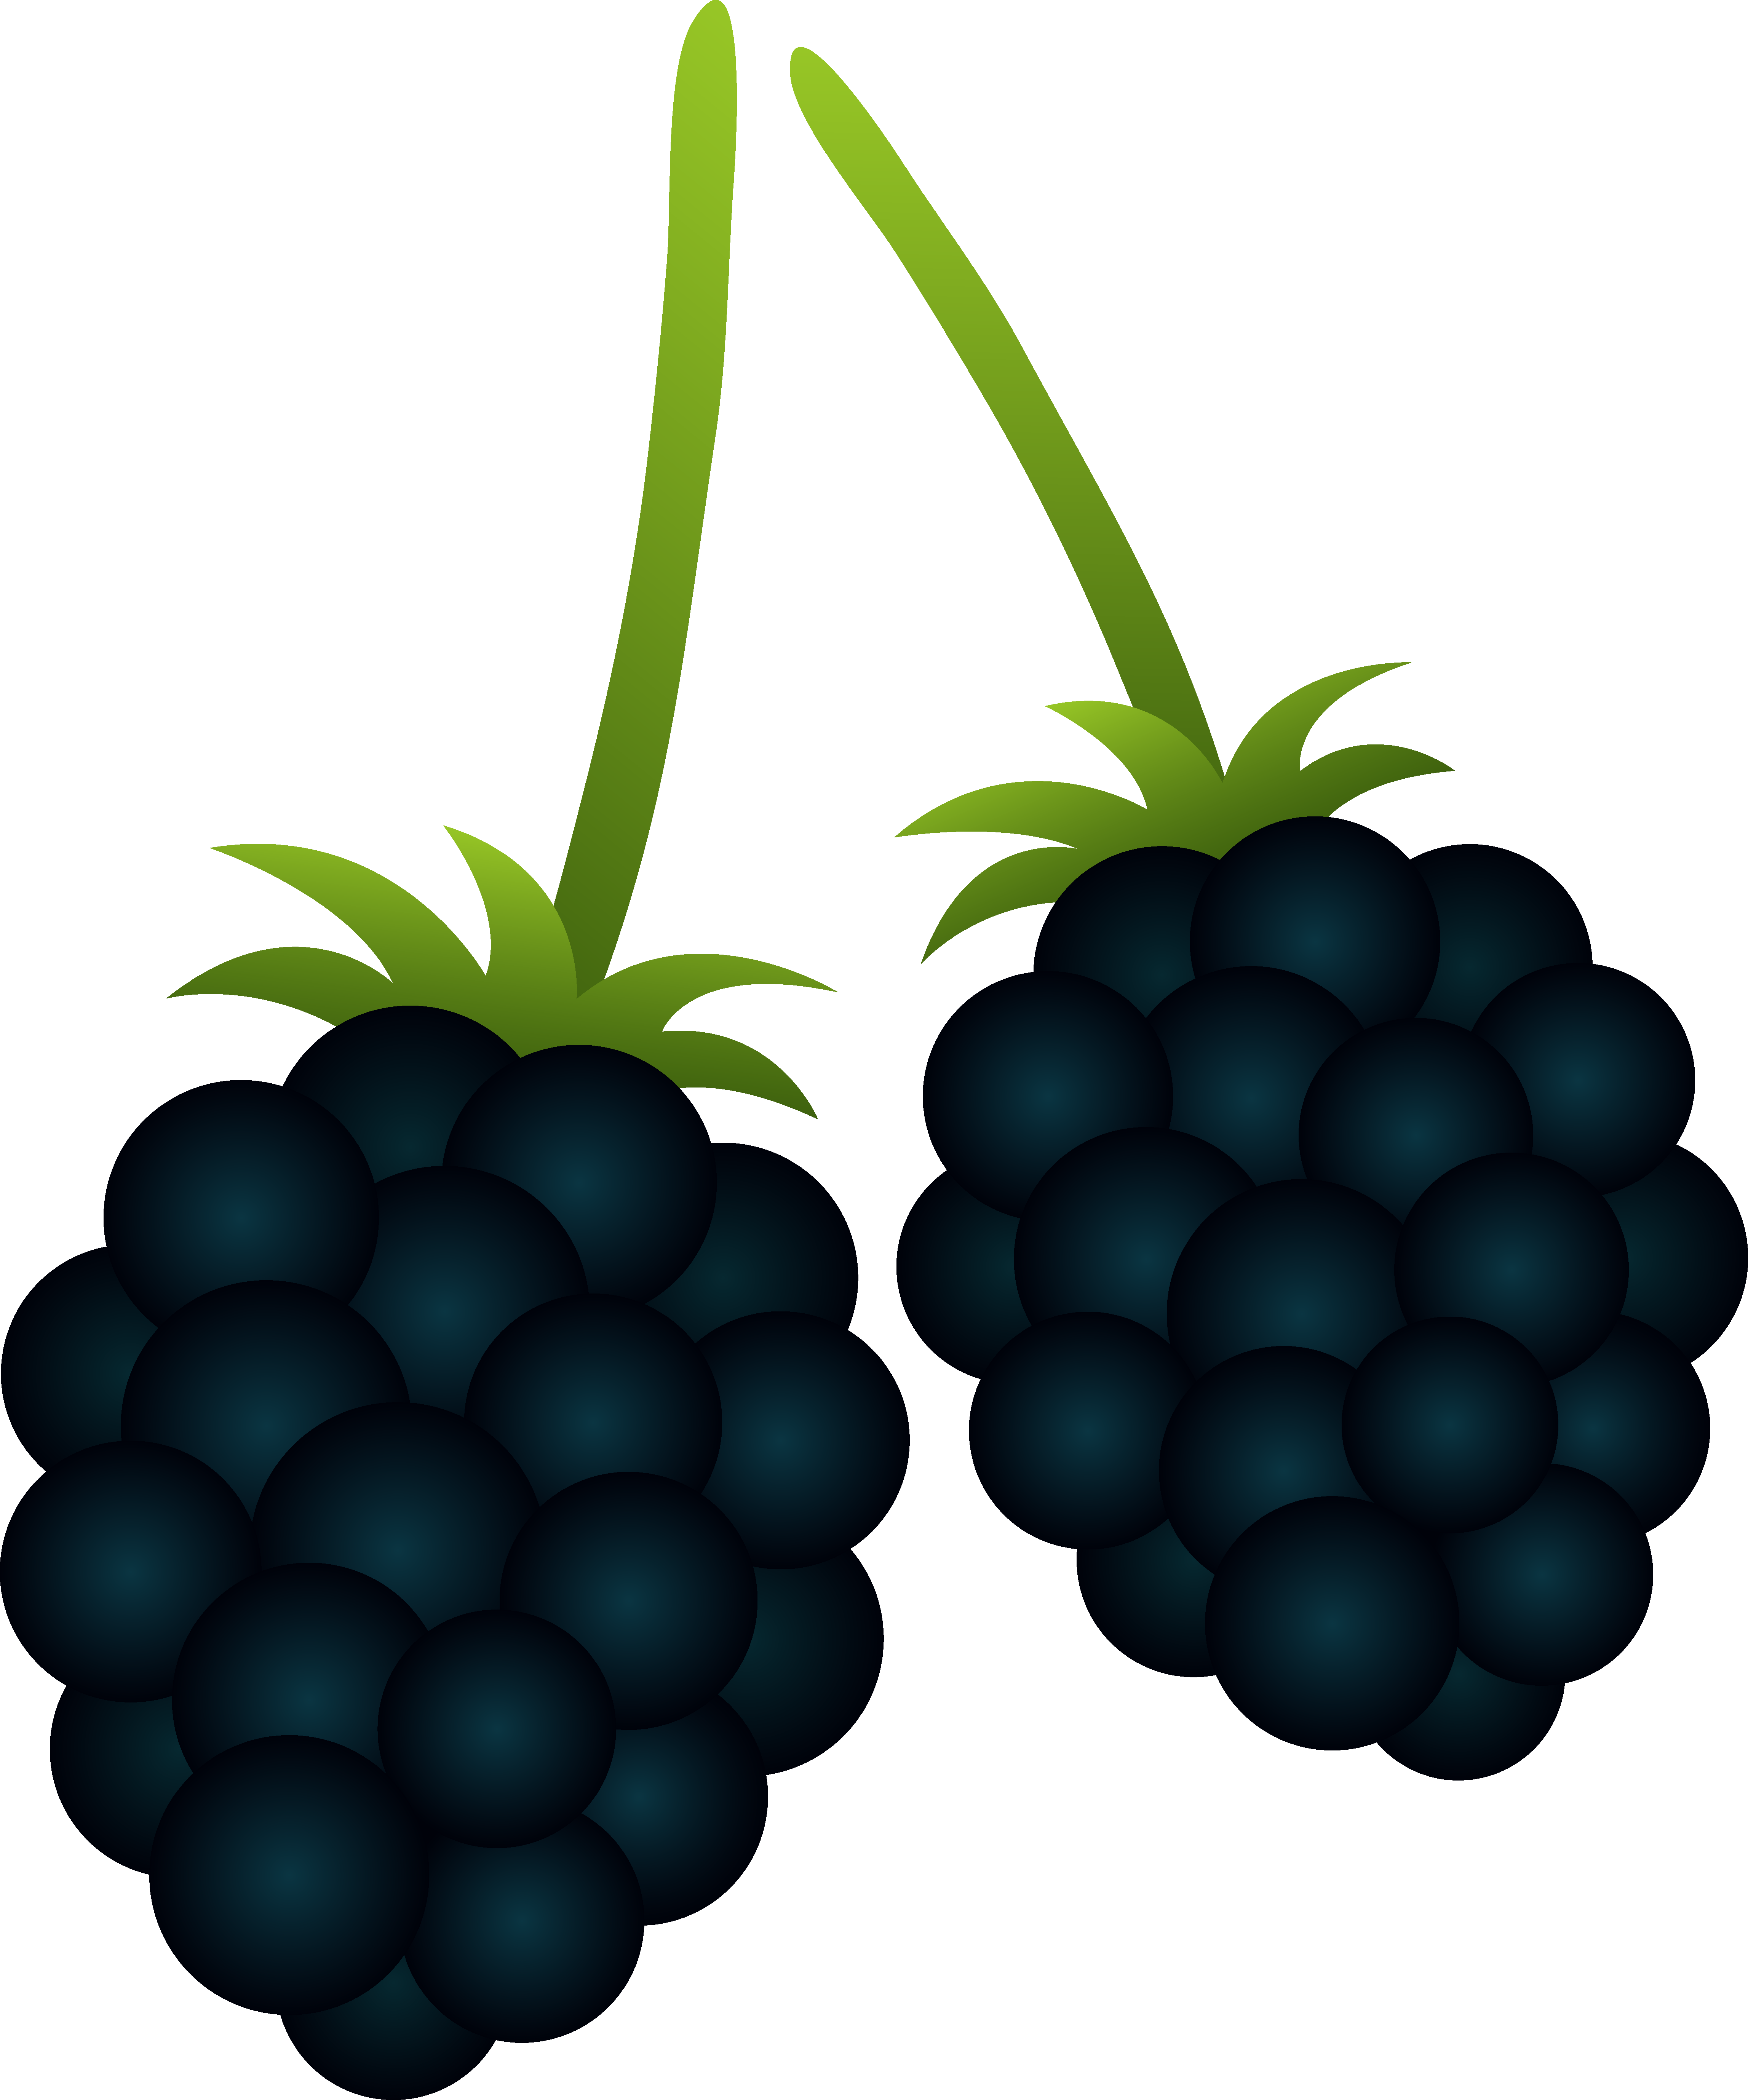 Clipart blackberries graphic library stock Two Blackberries - Free Clip Art graphic library stock